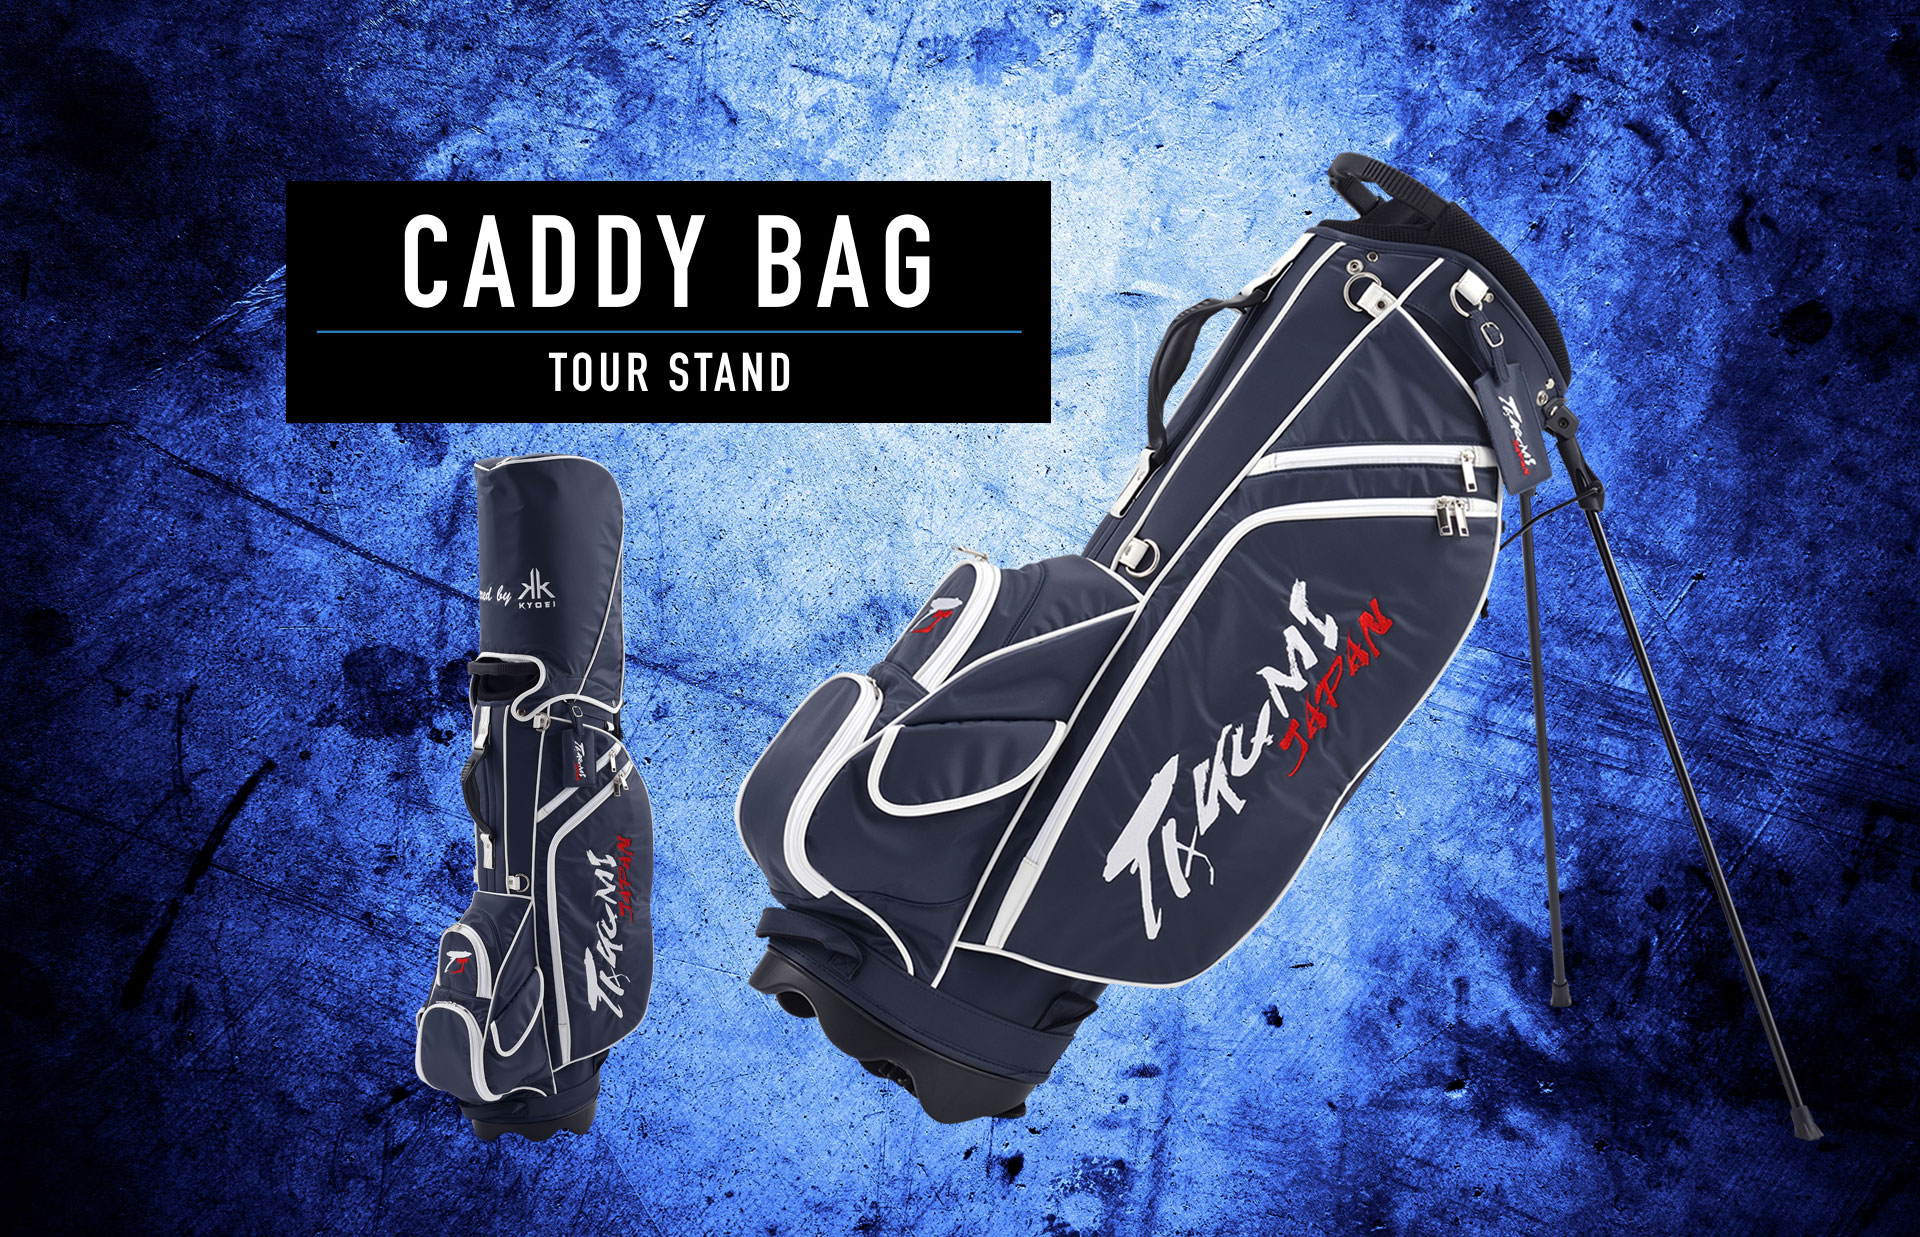 CADDY BAG TOUR STAND